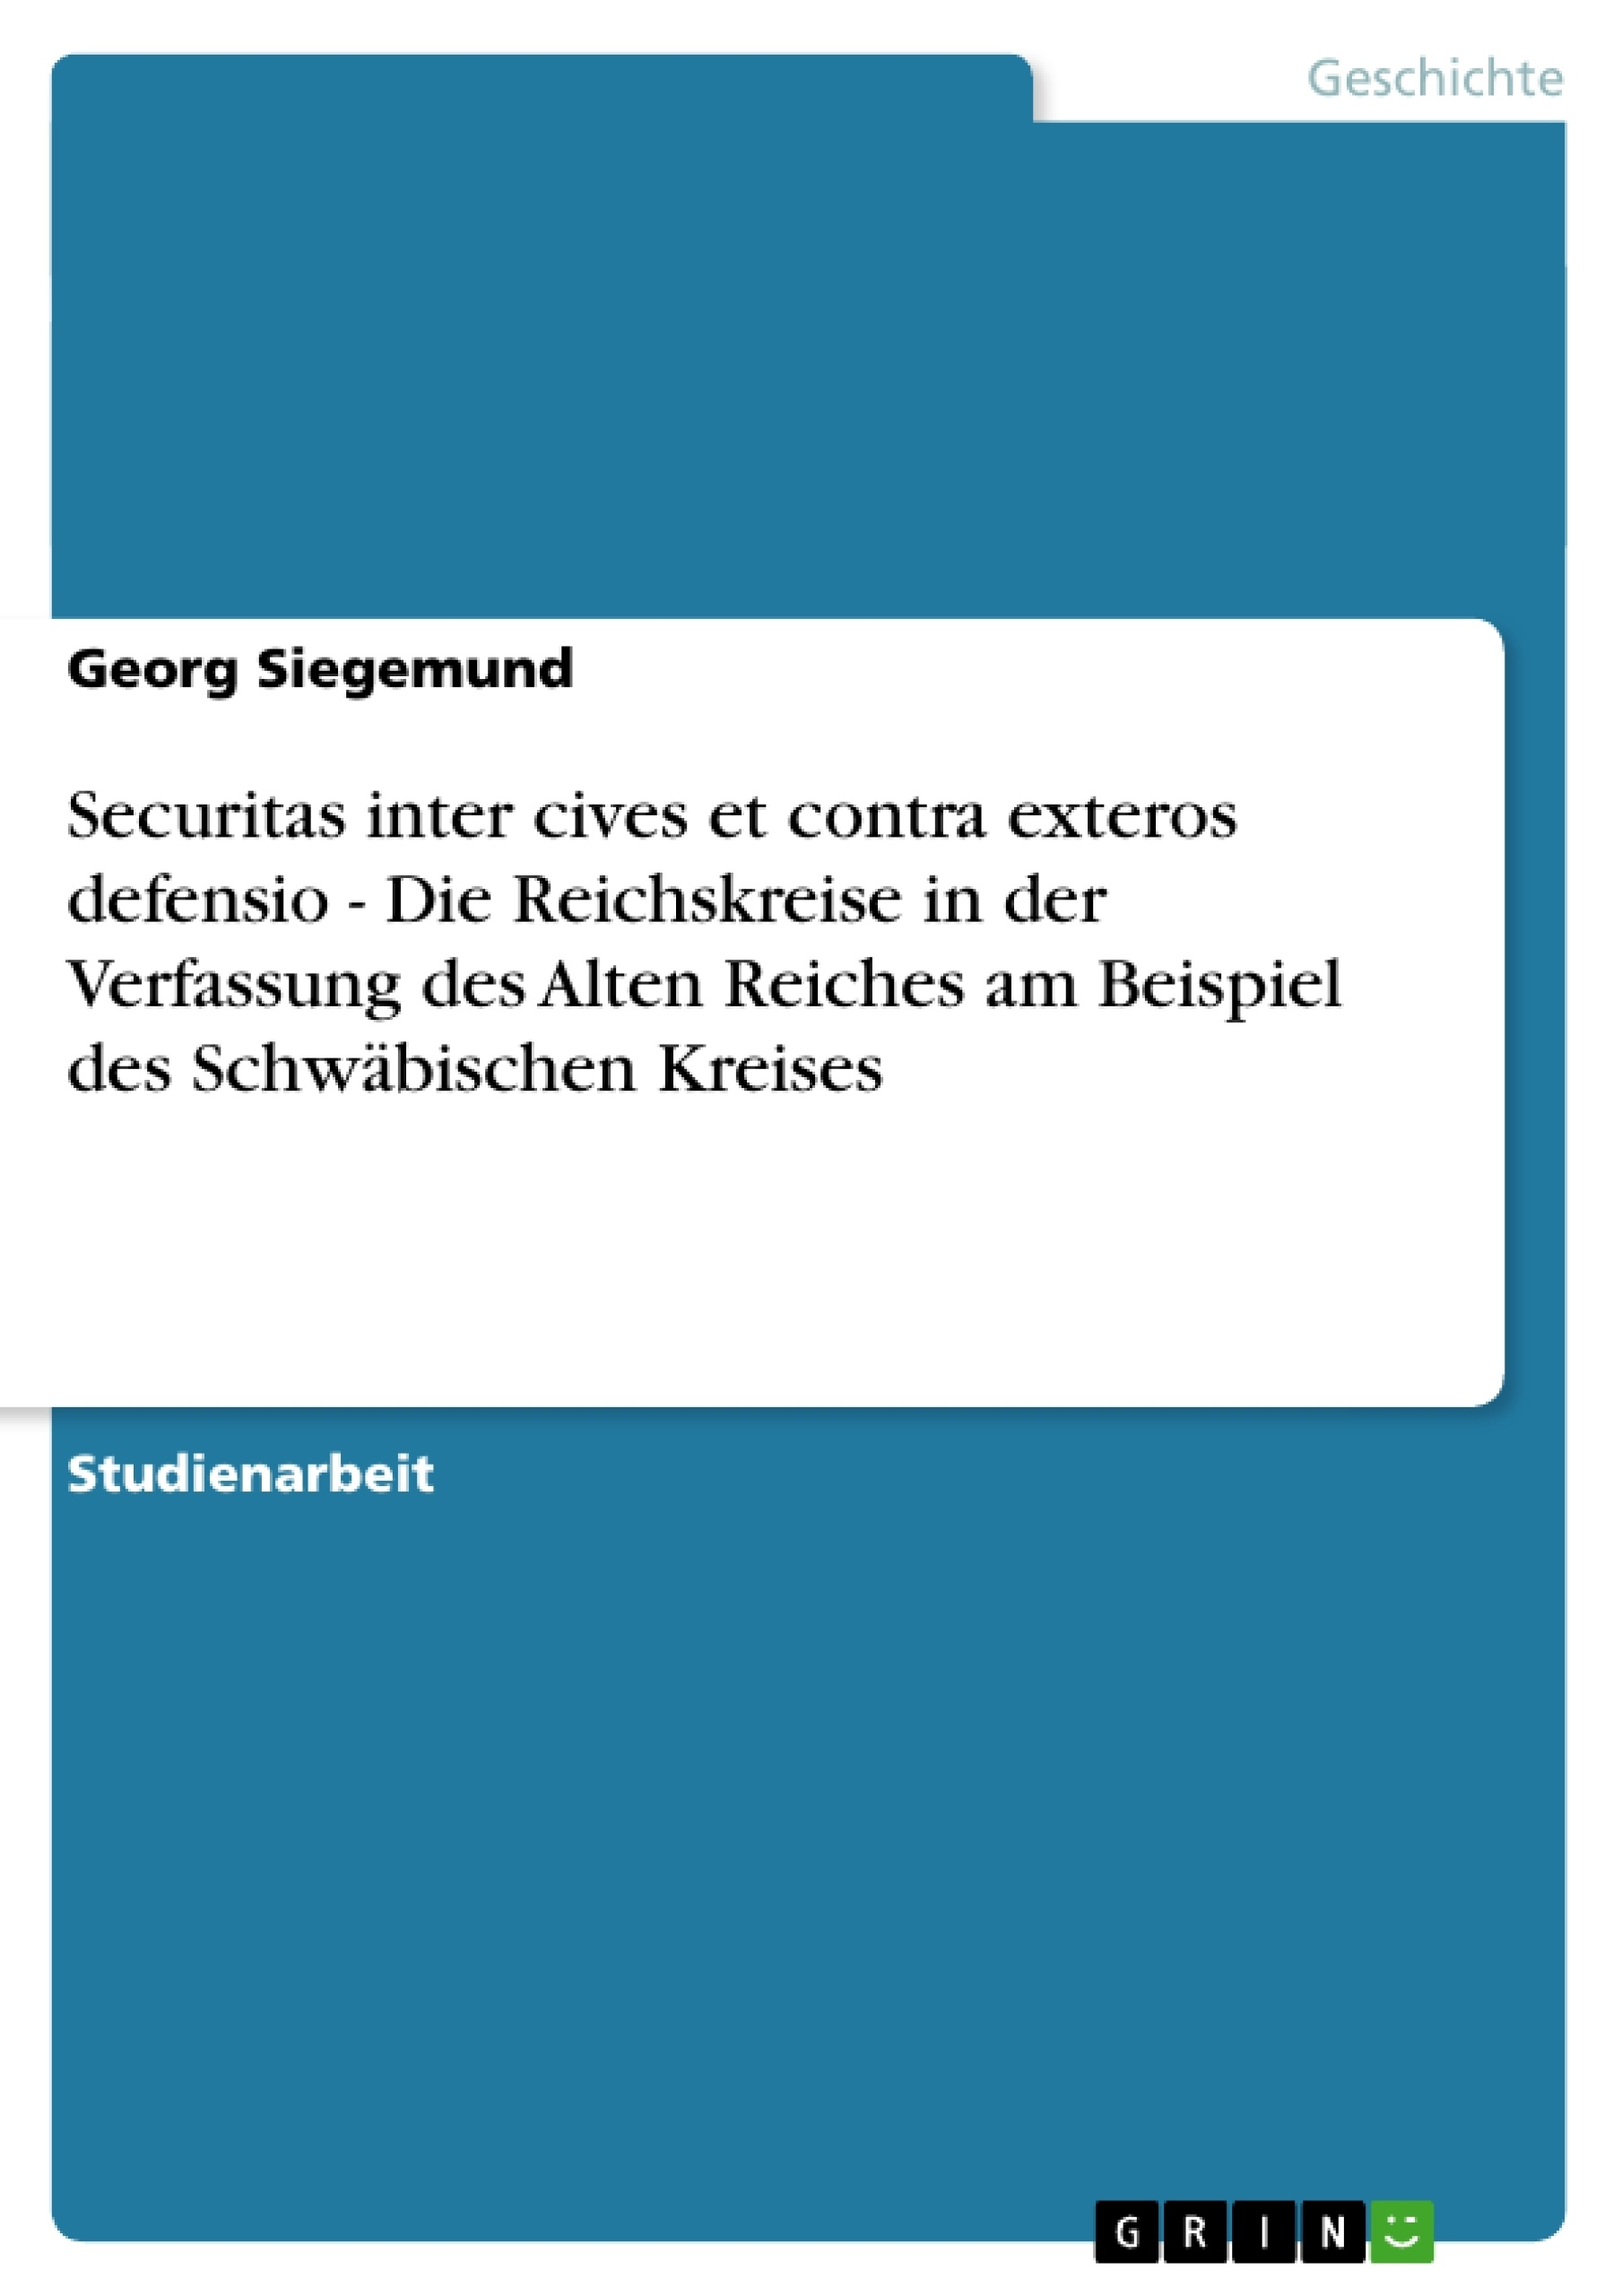 Titel: Securitas inter cives et contra exteros defensio - Die Reichskreise in der Verfassung des Alten Reiches am Beispiel des Schwäbischen Kreises